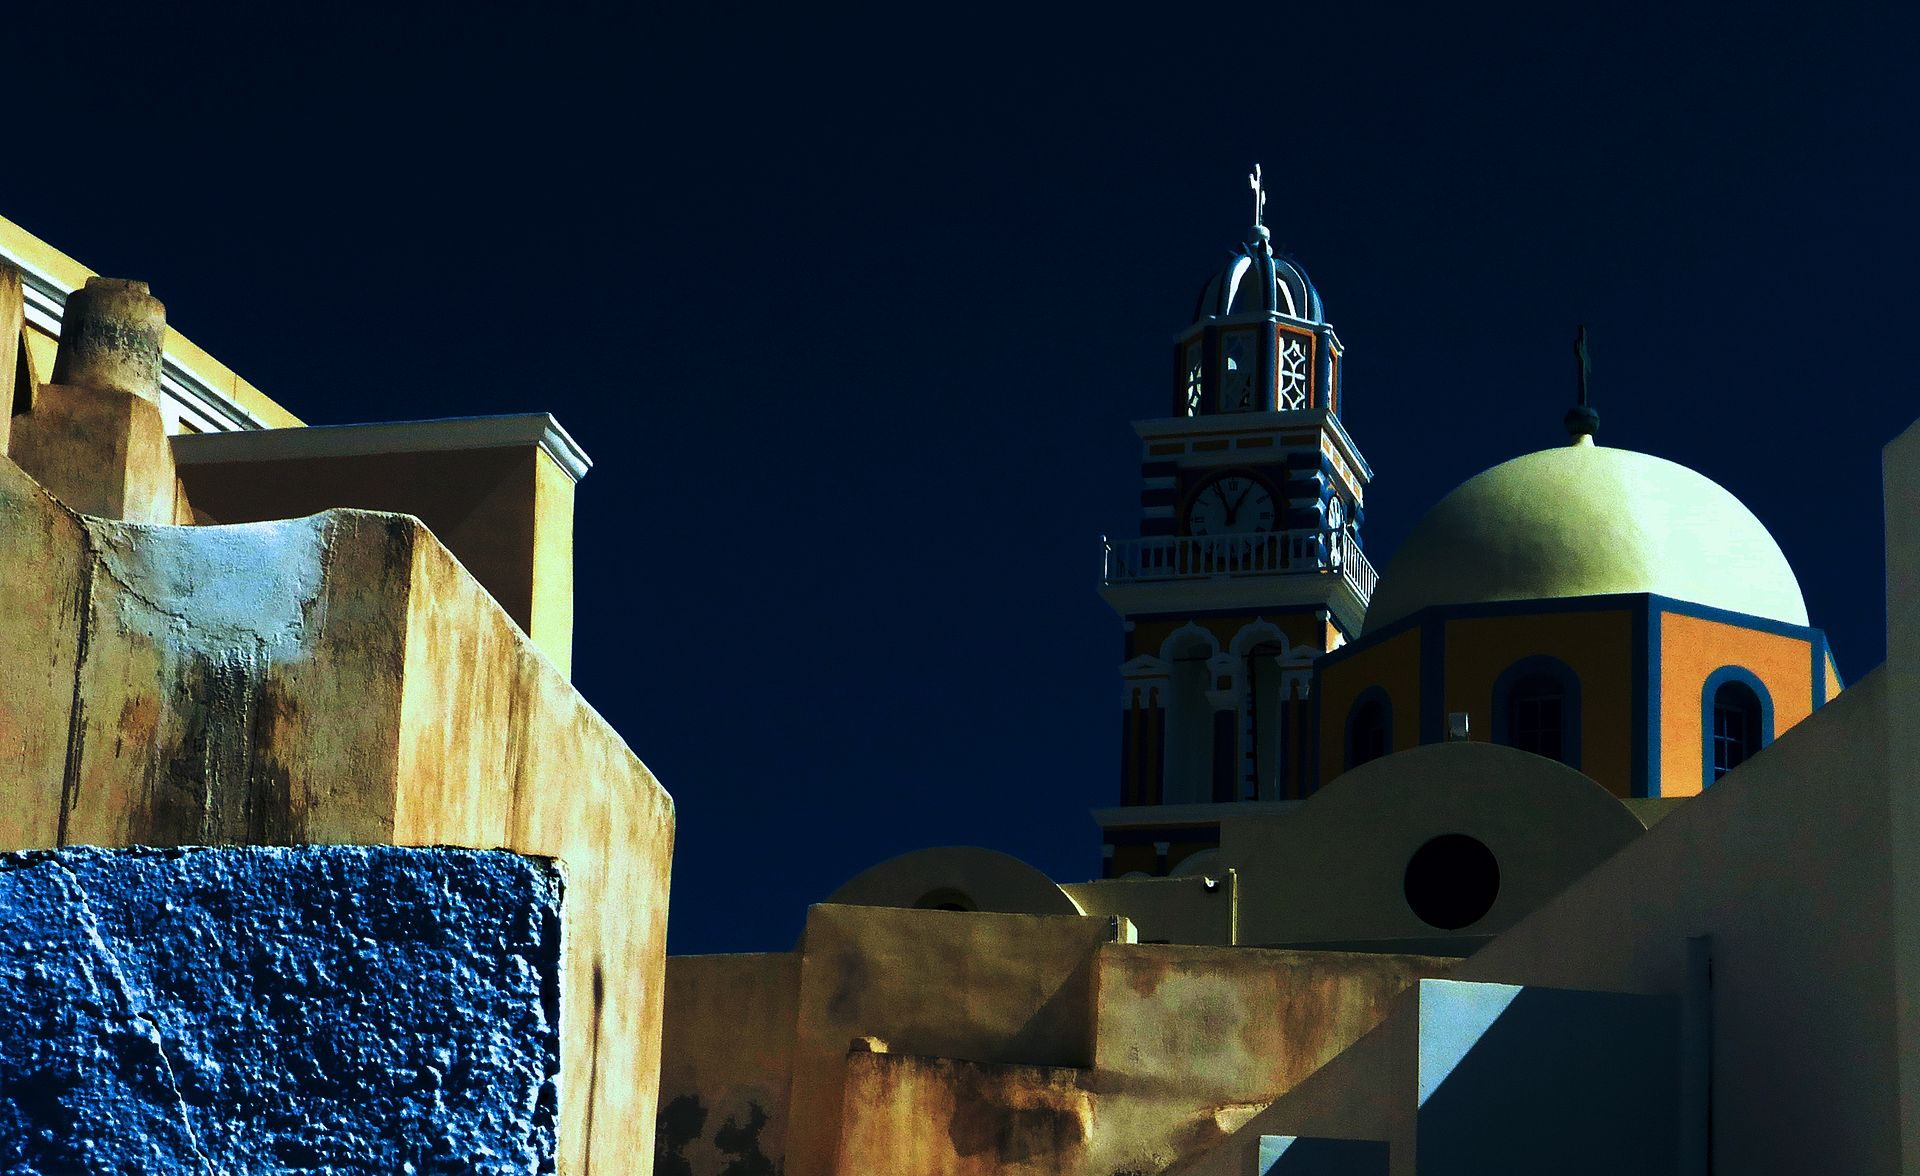 Peindre la nuit 1920px-Church_and_city_walls%2C_Santorini%2C_Greece_Day_for_night